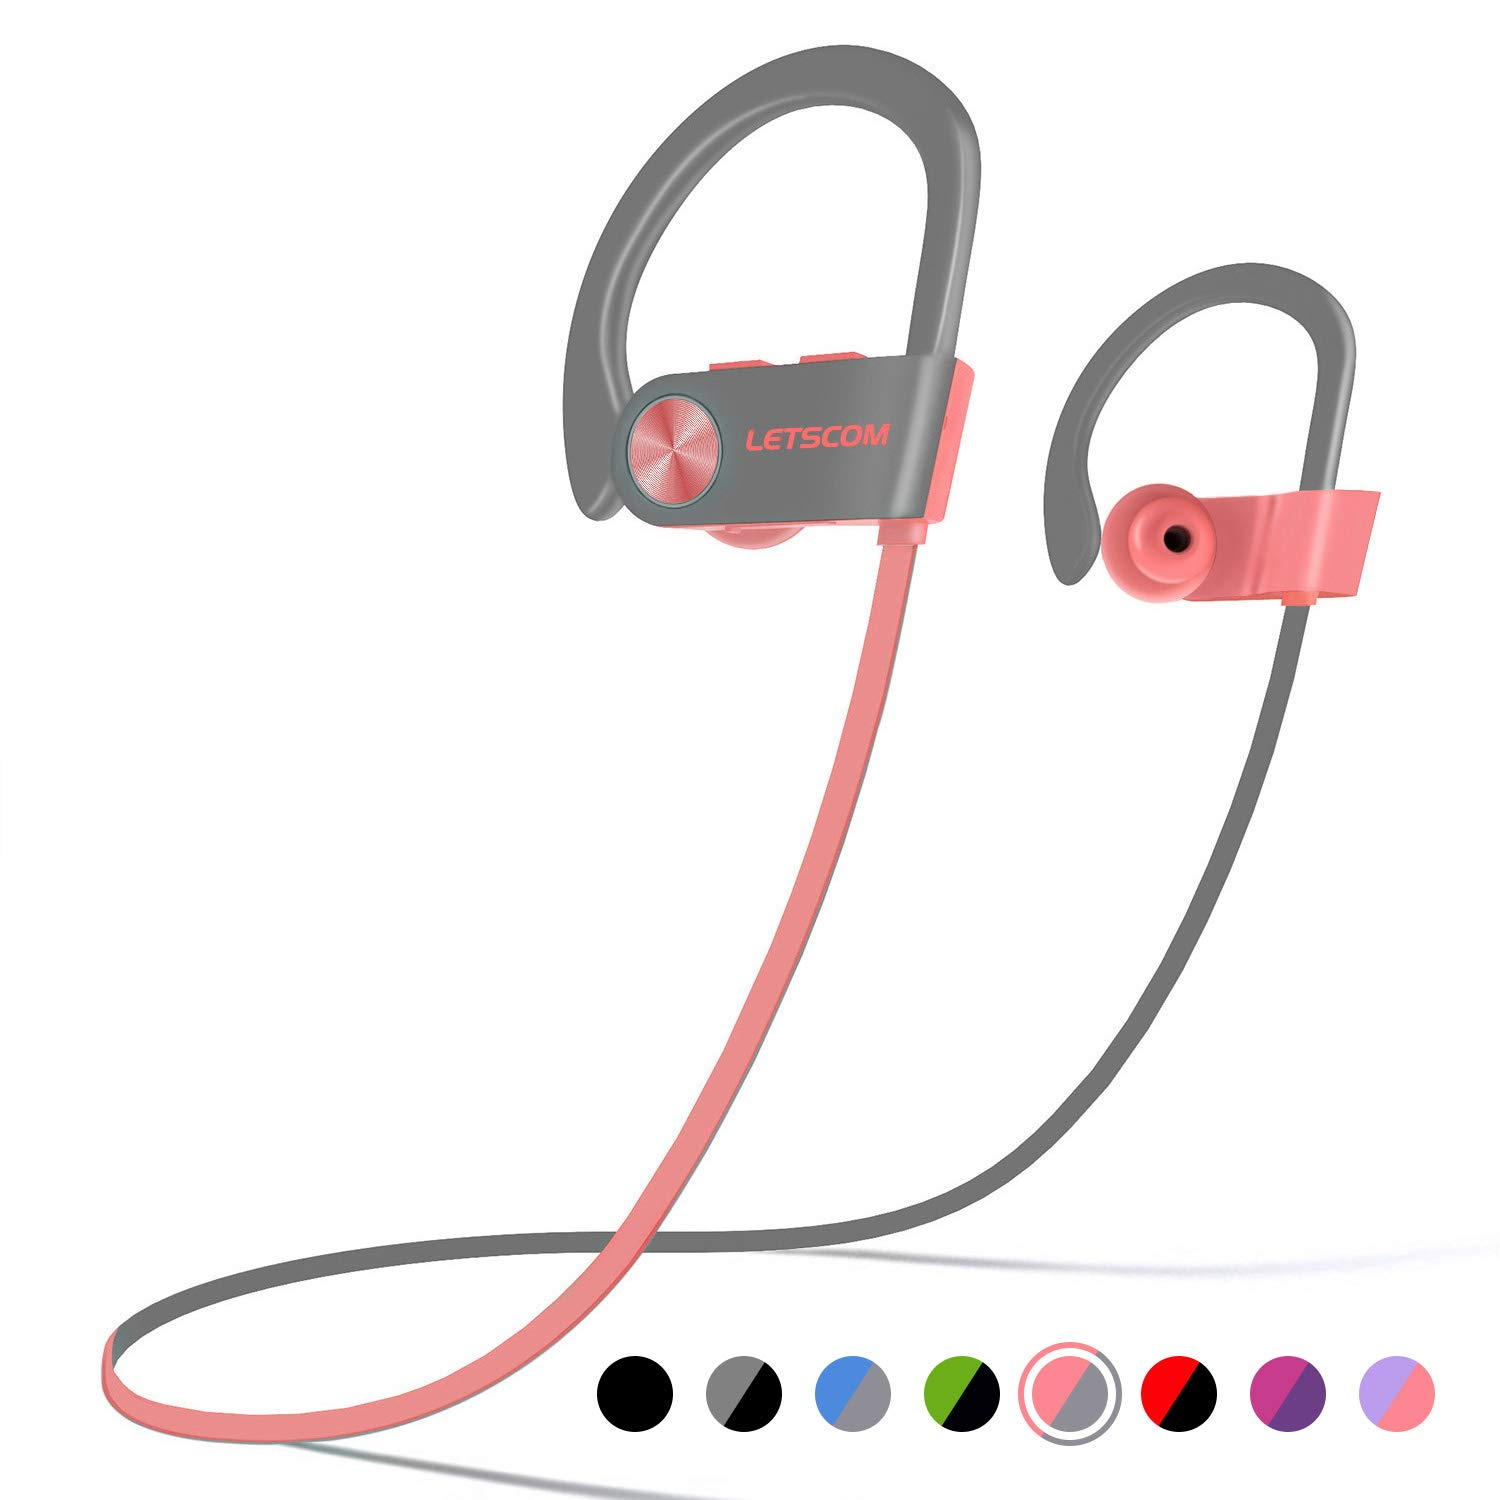 LETSCOM bluetooth headset IPX7 waterproof, motion wireless headset, bluetooth 4.1, acoustic bass stereo anti-perspiration earplugs w/microphone noise cancelling headphones exercise, running, fitness, 8 hours of playing time